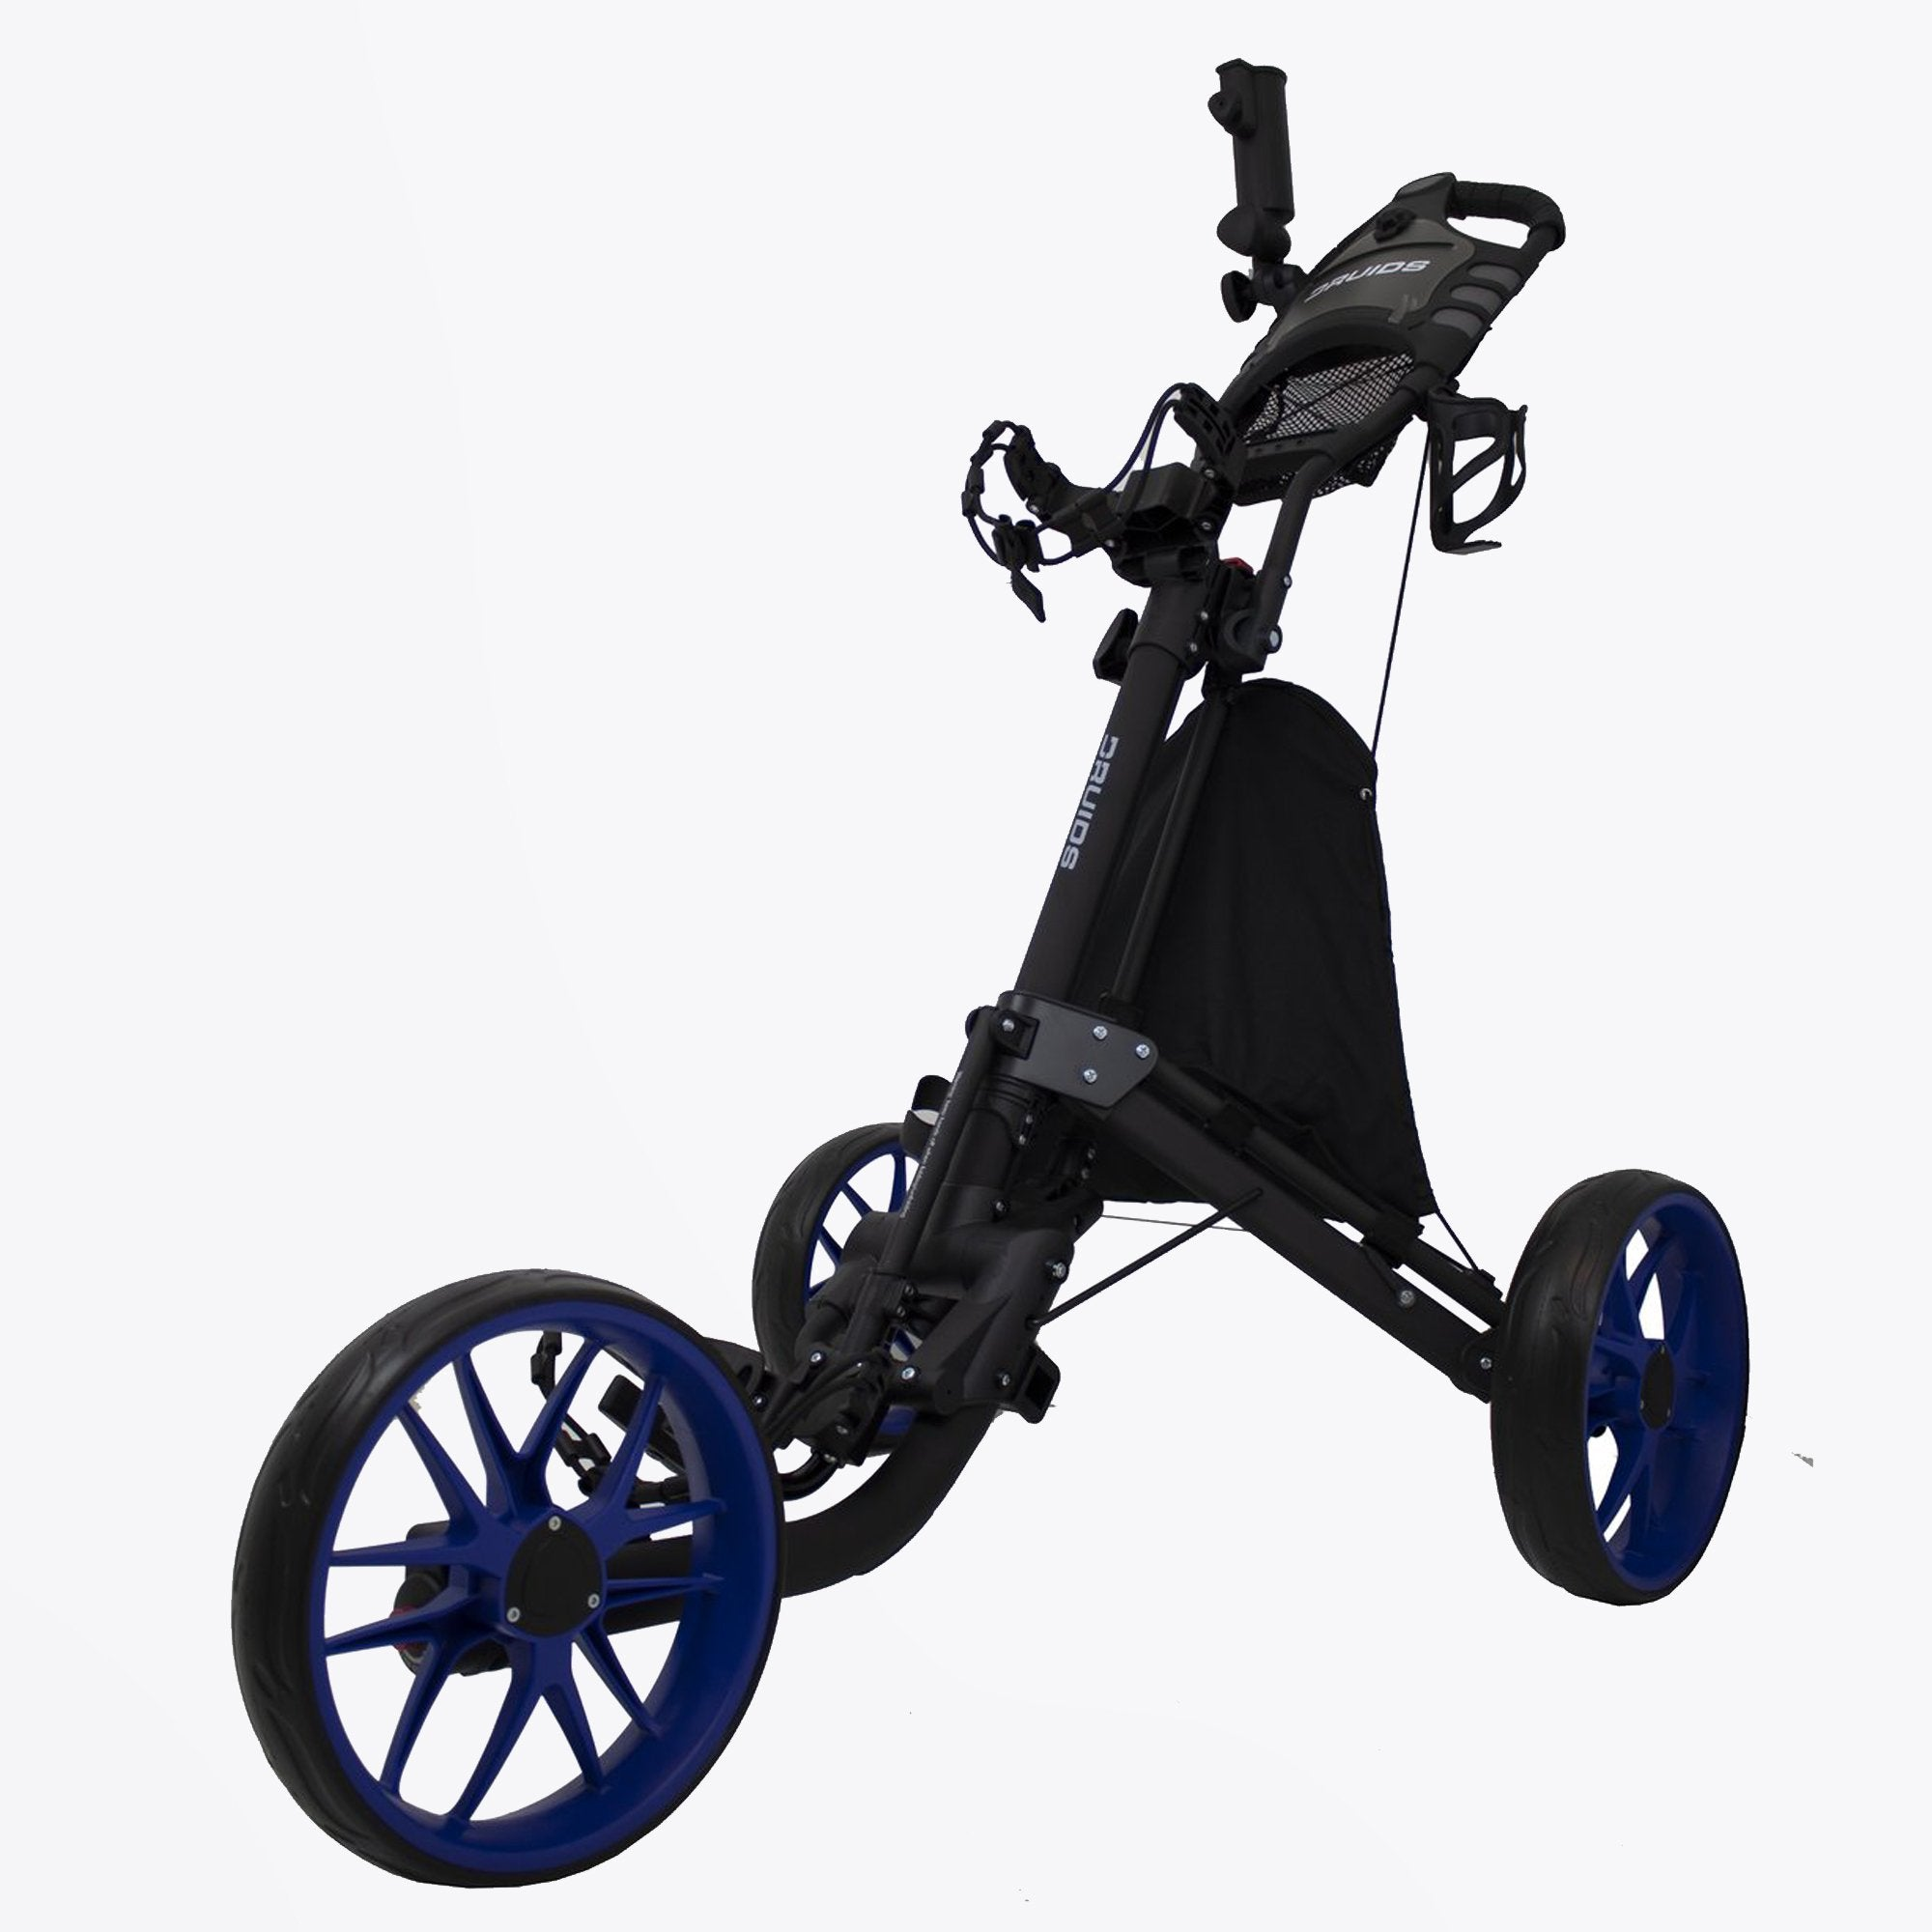 Druids Golf - Compact EZ Carbon Trolley (Black/Blue)